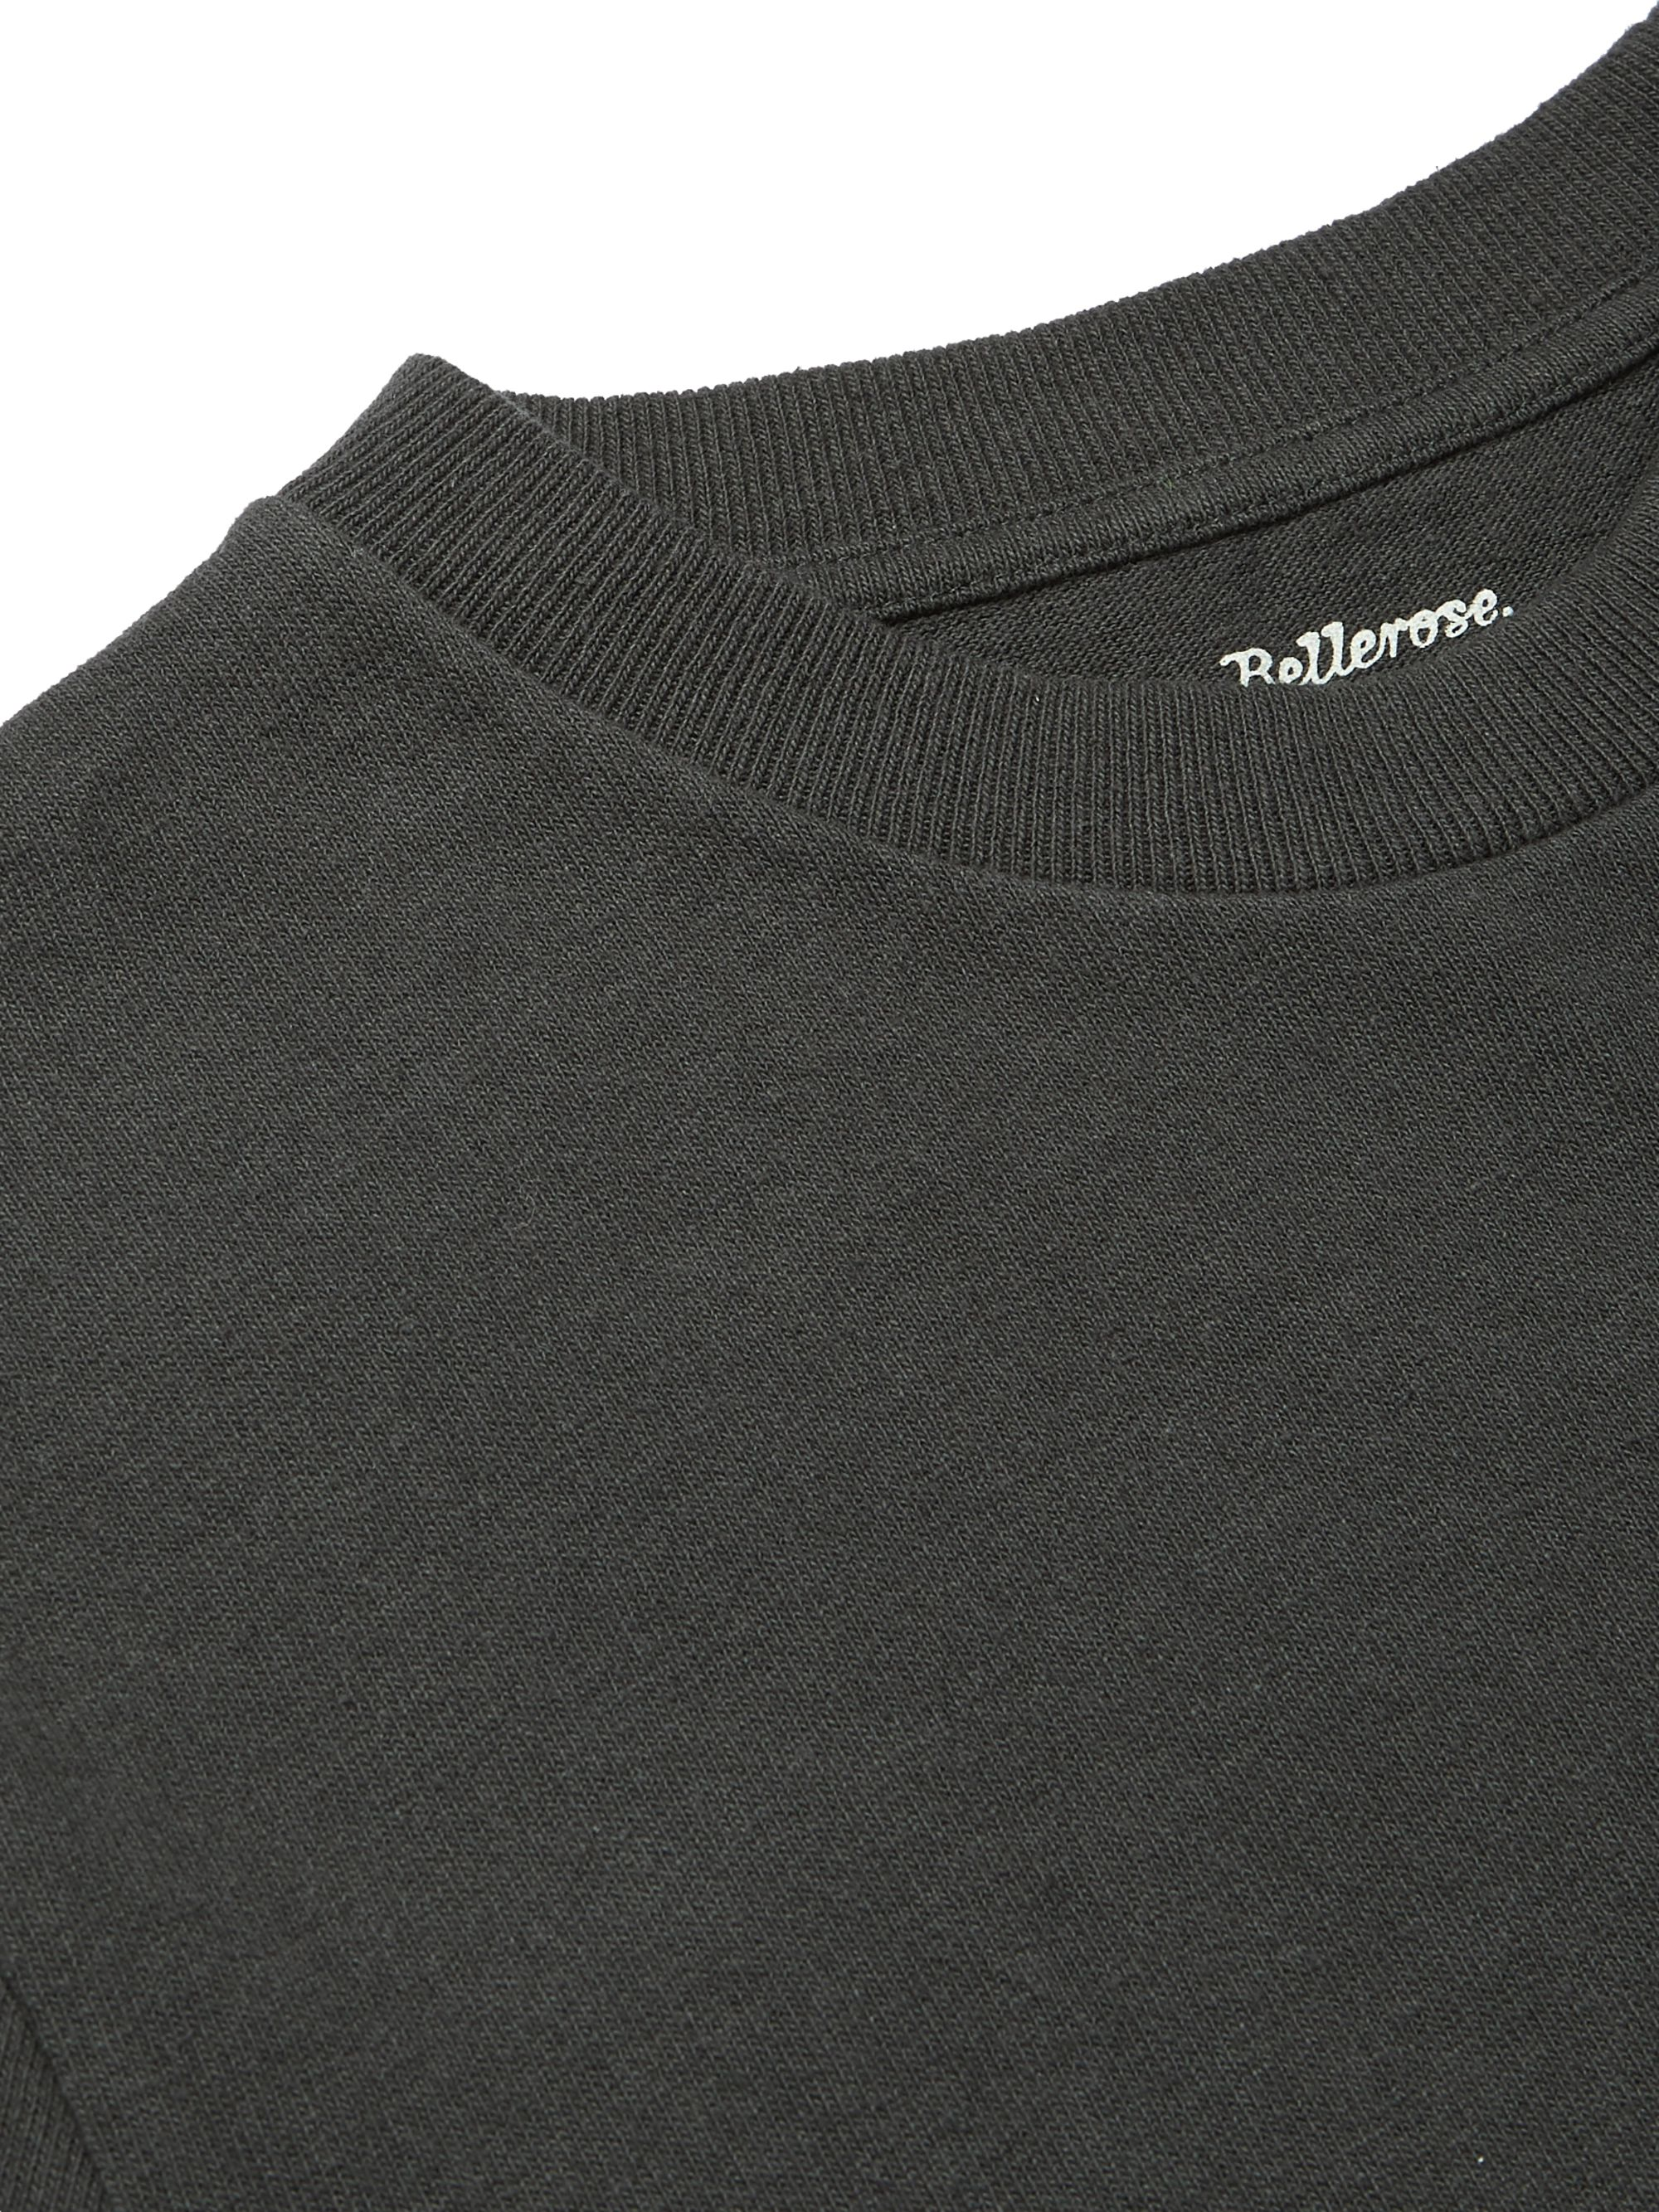 Black Cotton-jersey T-shirt | Bellerose